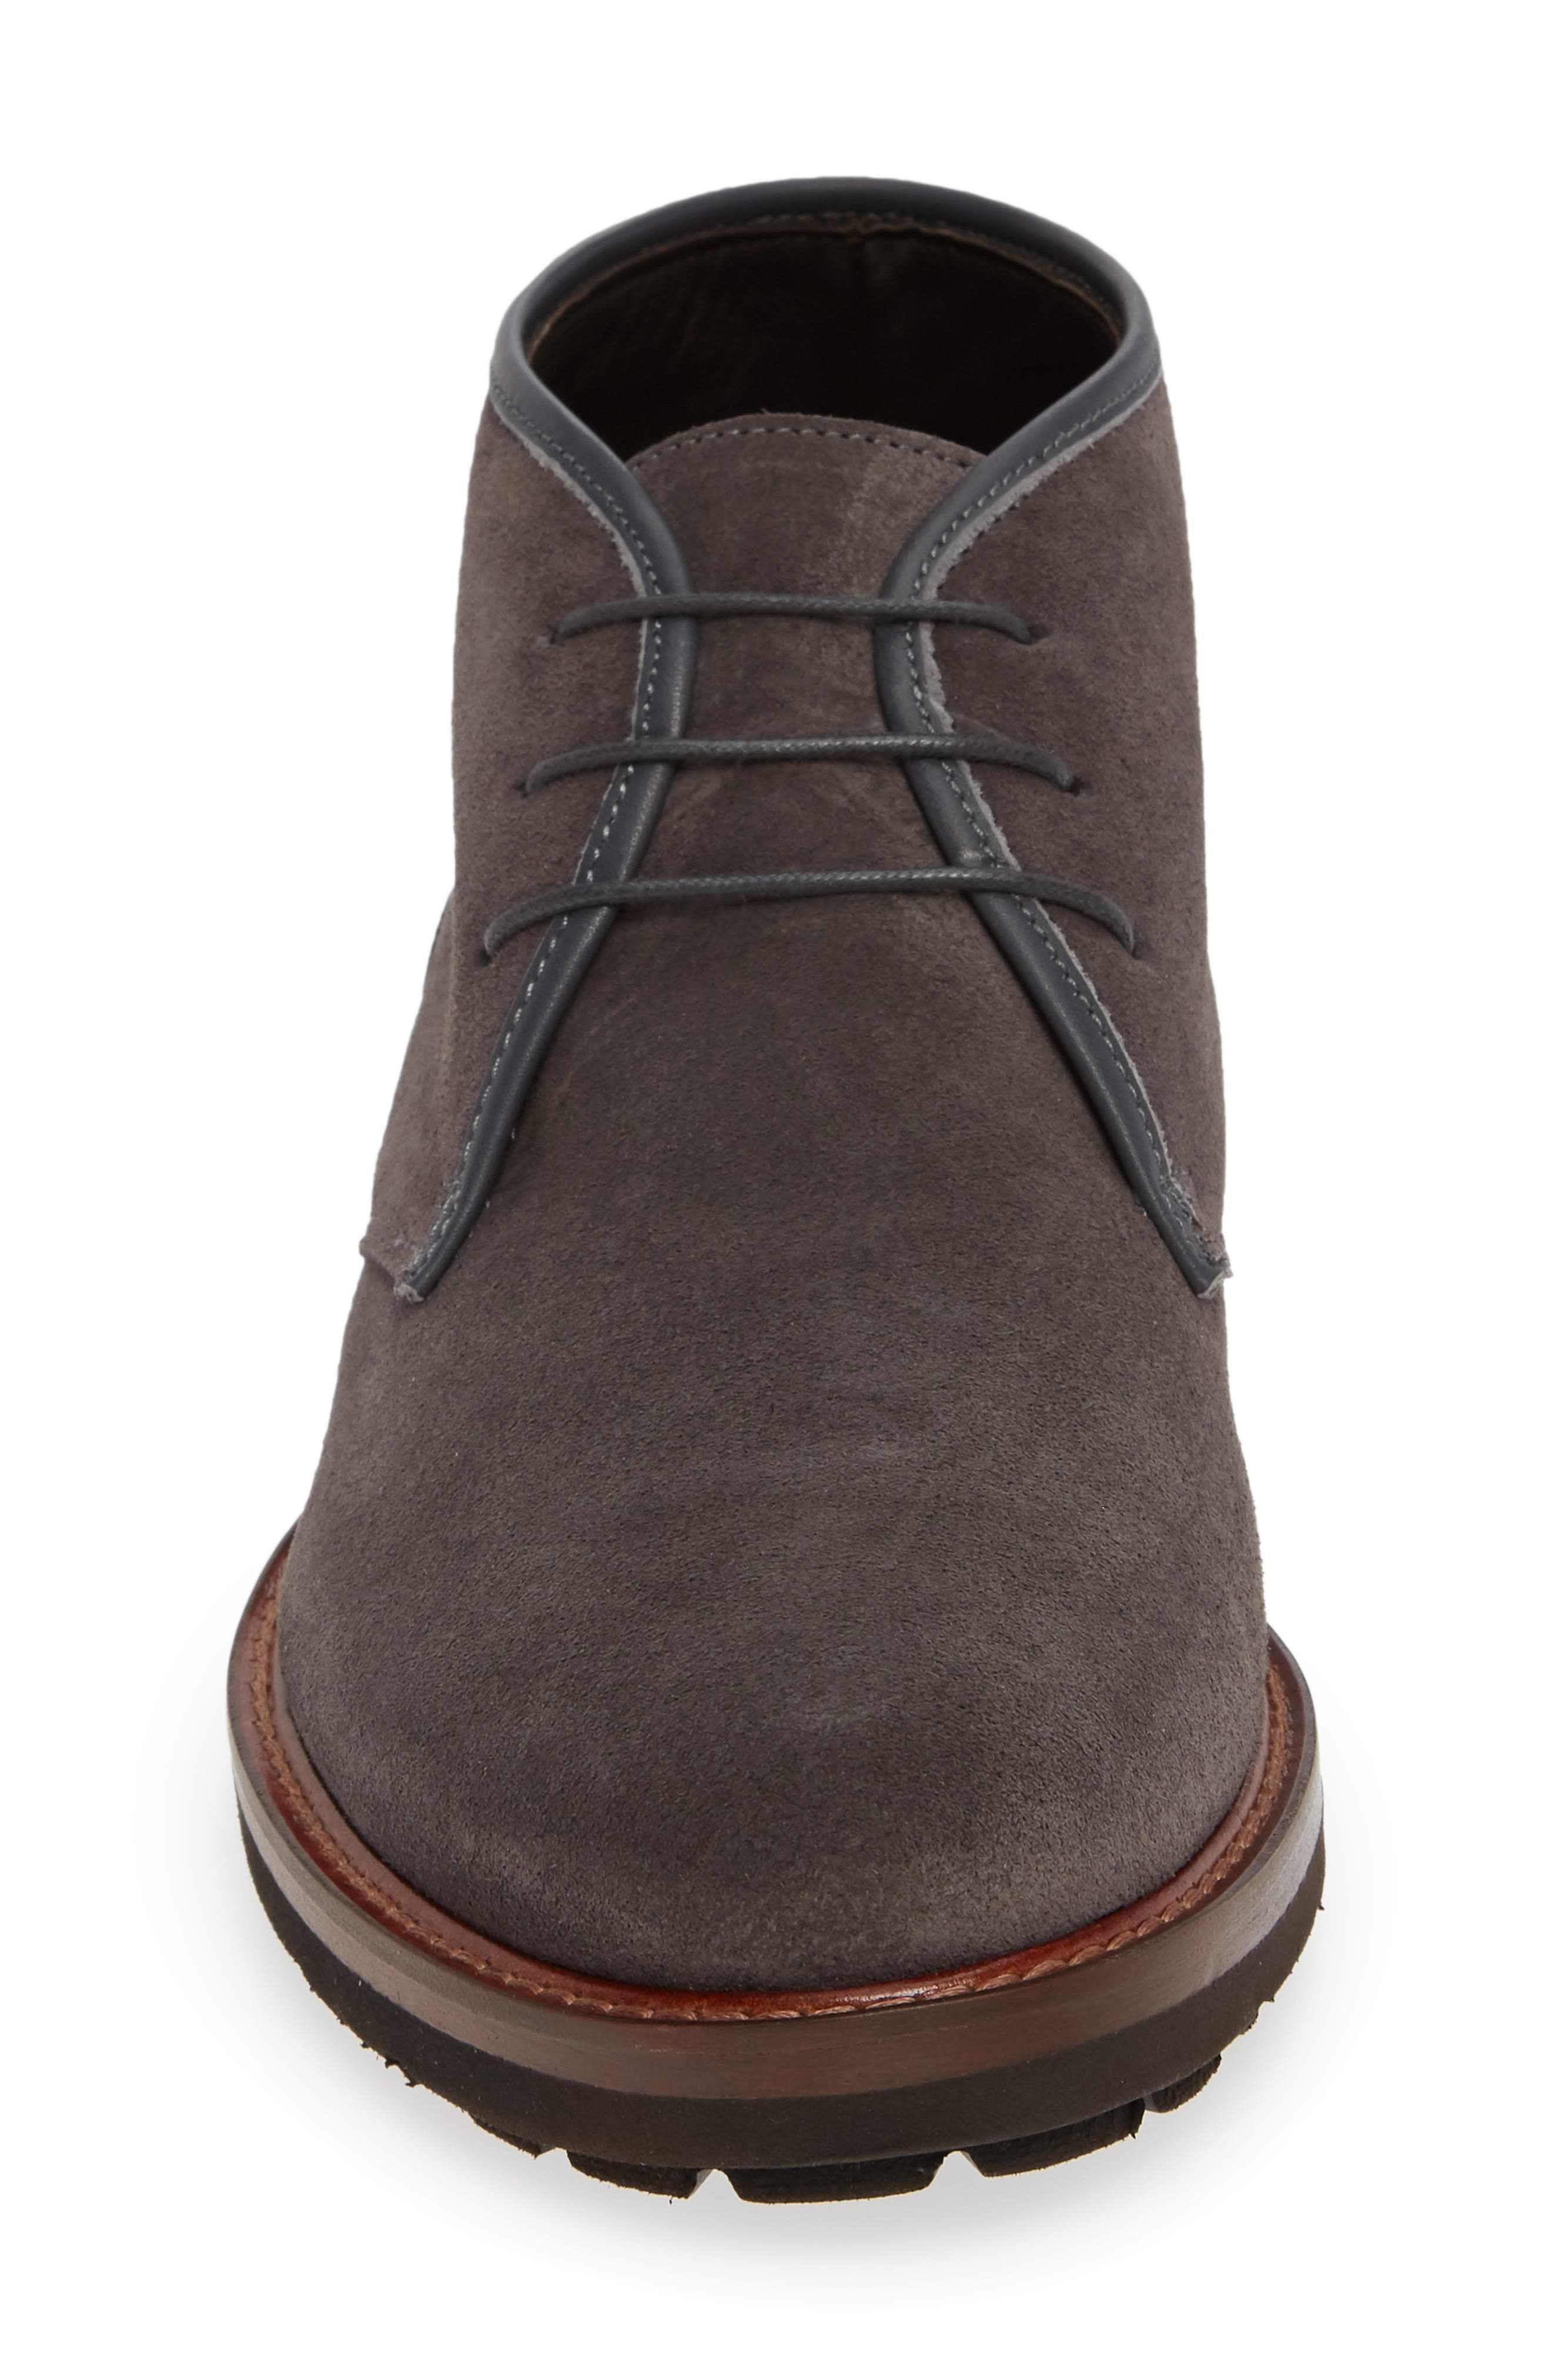 MONTE ROSSO,                             Brixen Water Resistant Chukka Waterproof Boot,                             Alternate thumbnail 4, color,                             021